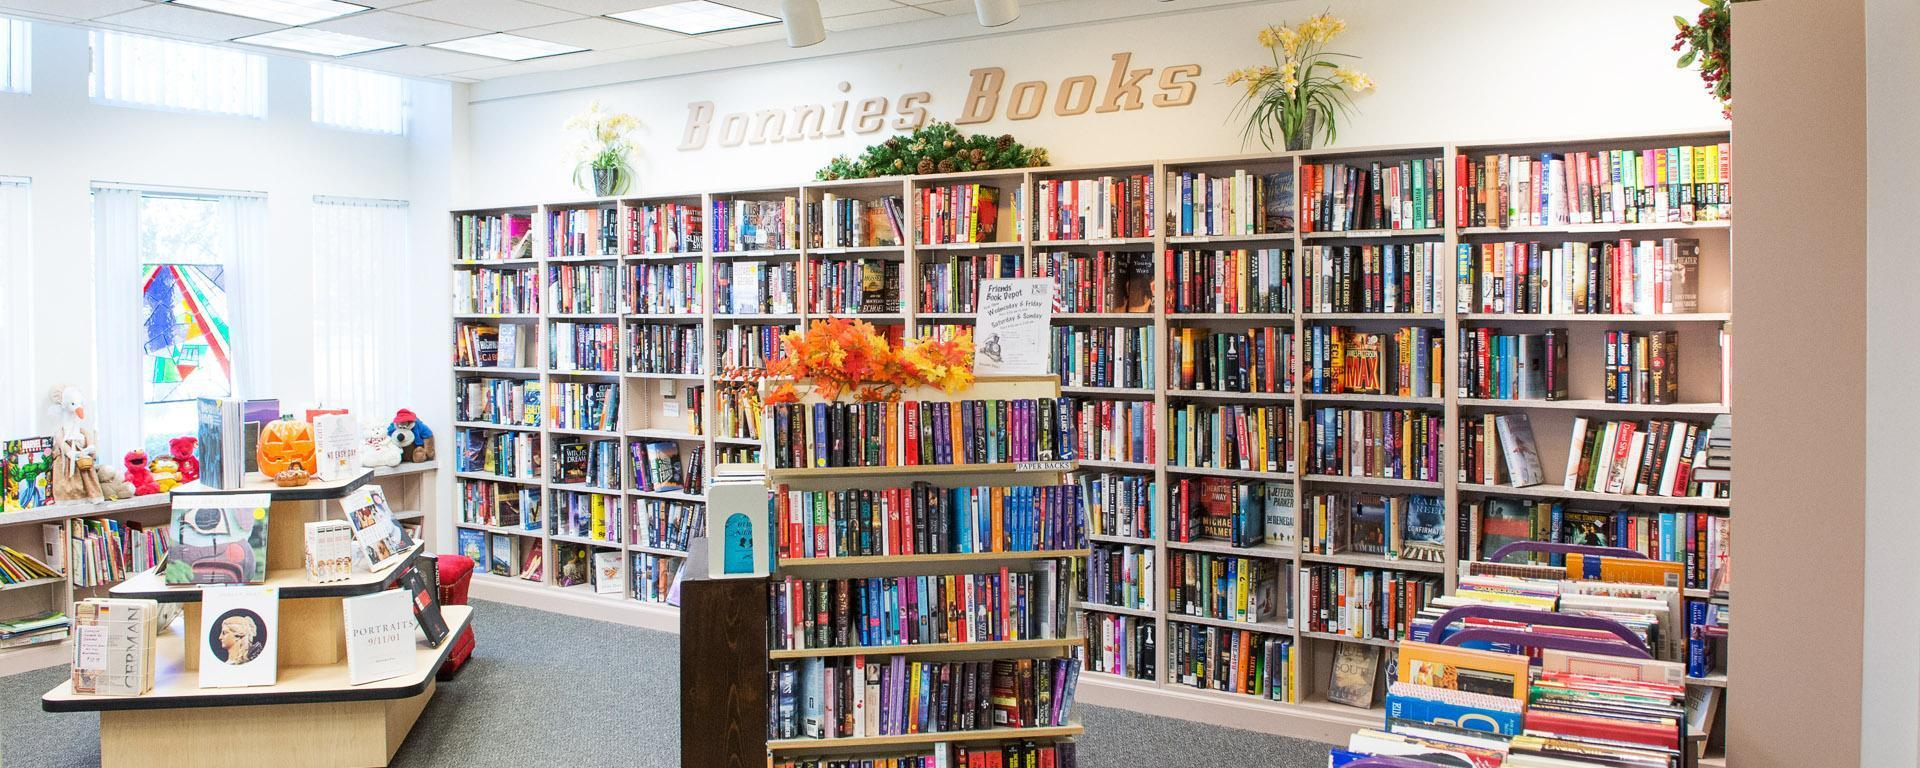 Picture of book shelves at Bonnie's books store